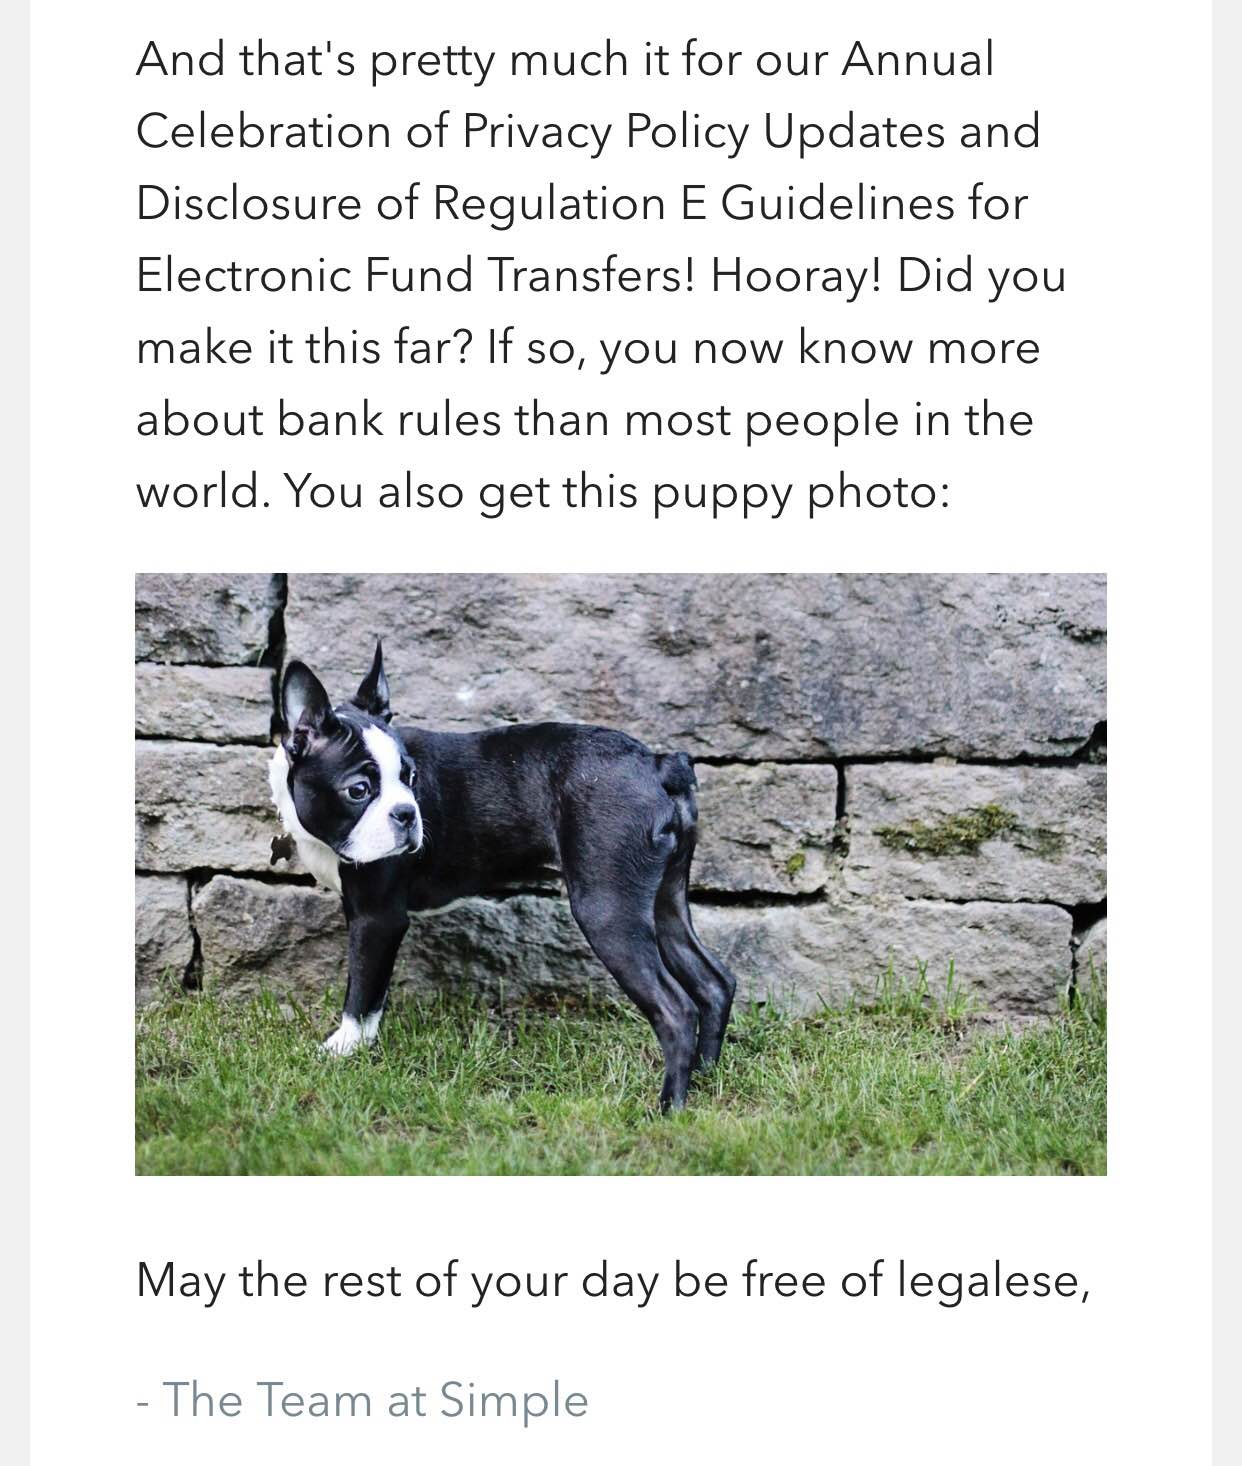 Puppy picture helps Simple Bank's customer communication on privacy policy to be educational and fun